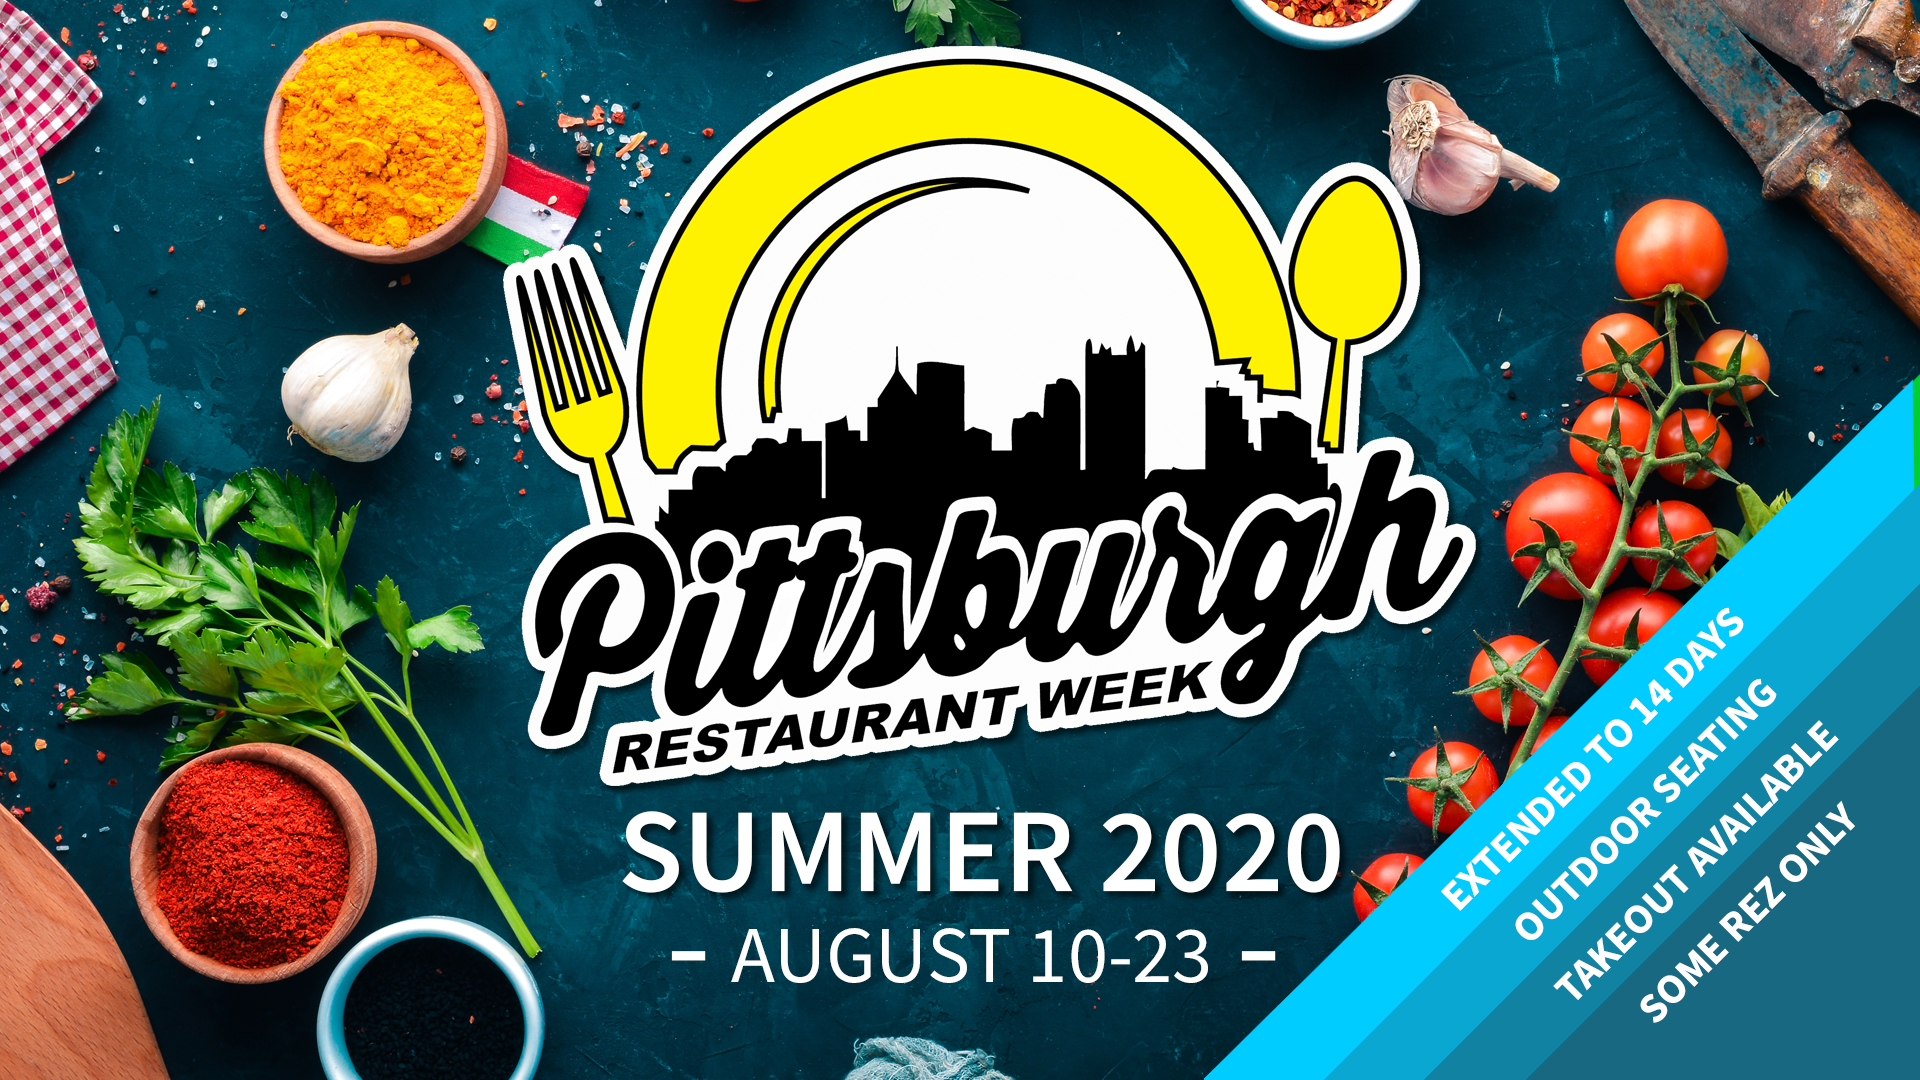 Pittsburgh Restaurant Week Summer 2020 Extended